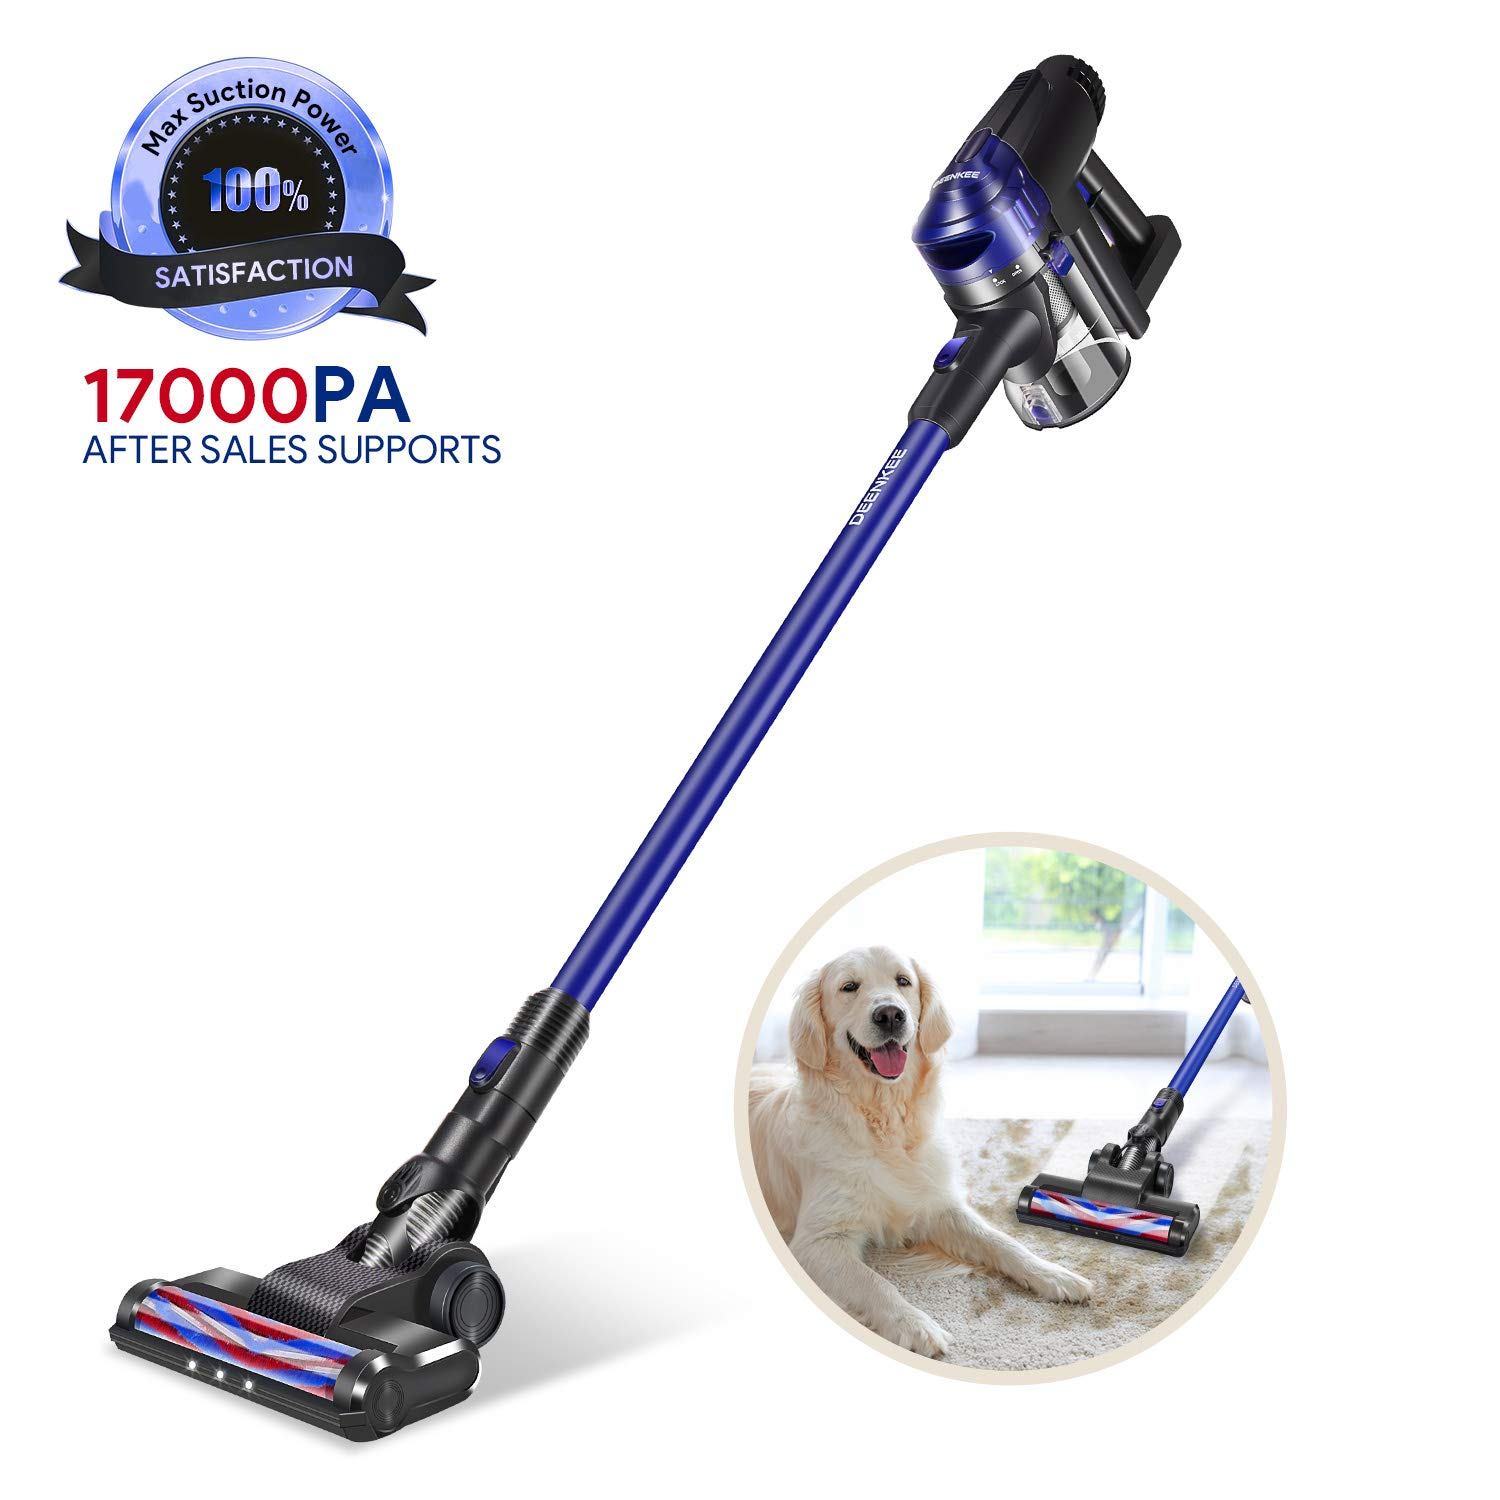 DEENKEE Cordless Vacuum Cleaner, 200W Brushless Motor with 17Kpa Powerful Suction & LED Brush,HEPA Filtration for Car Cleaning and Carpet Hard Floor Pet Hair Dust Cleaning